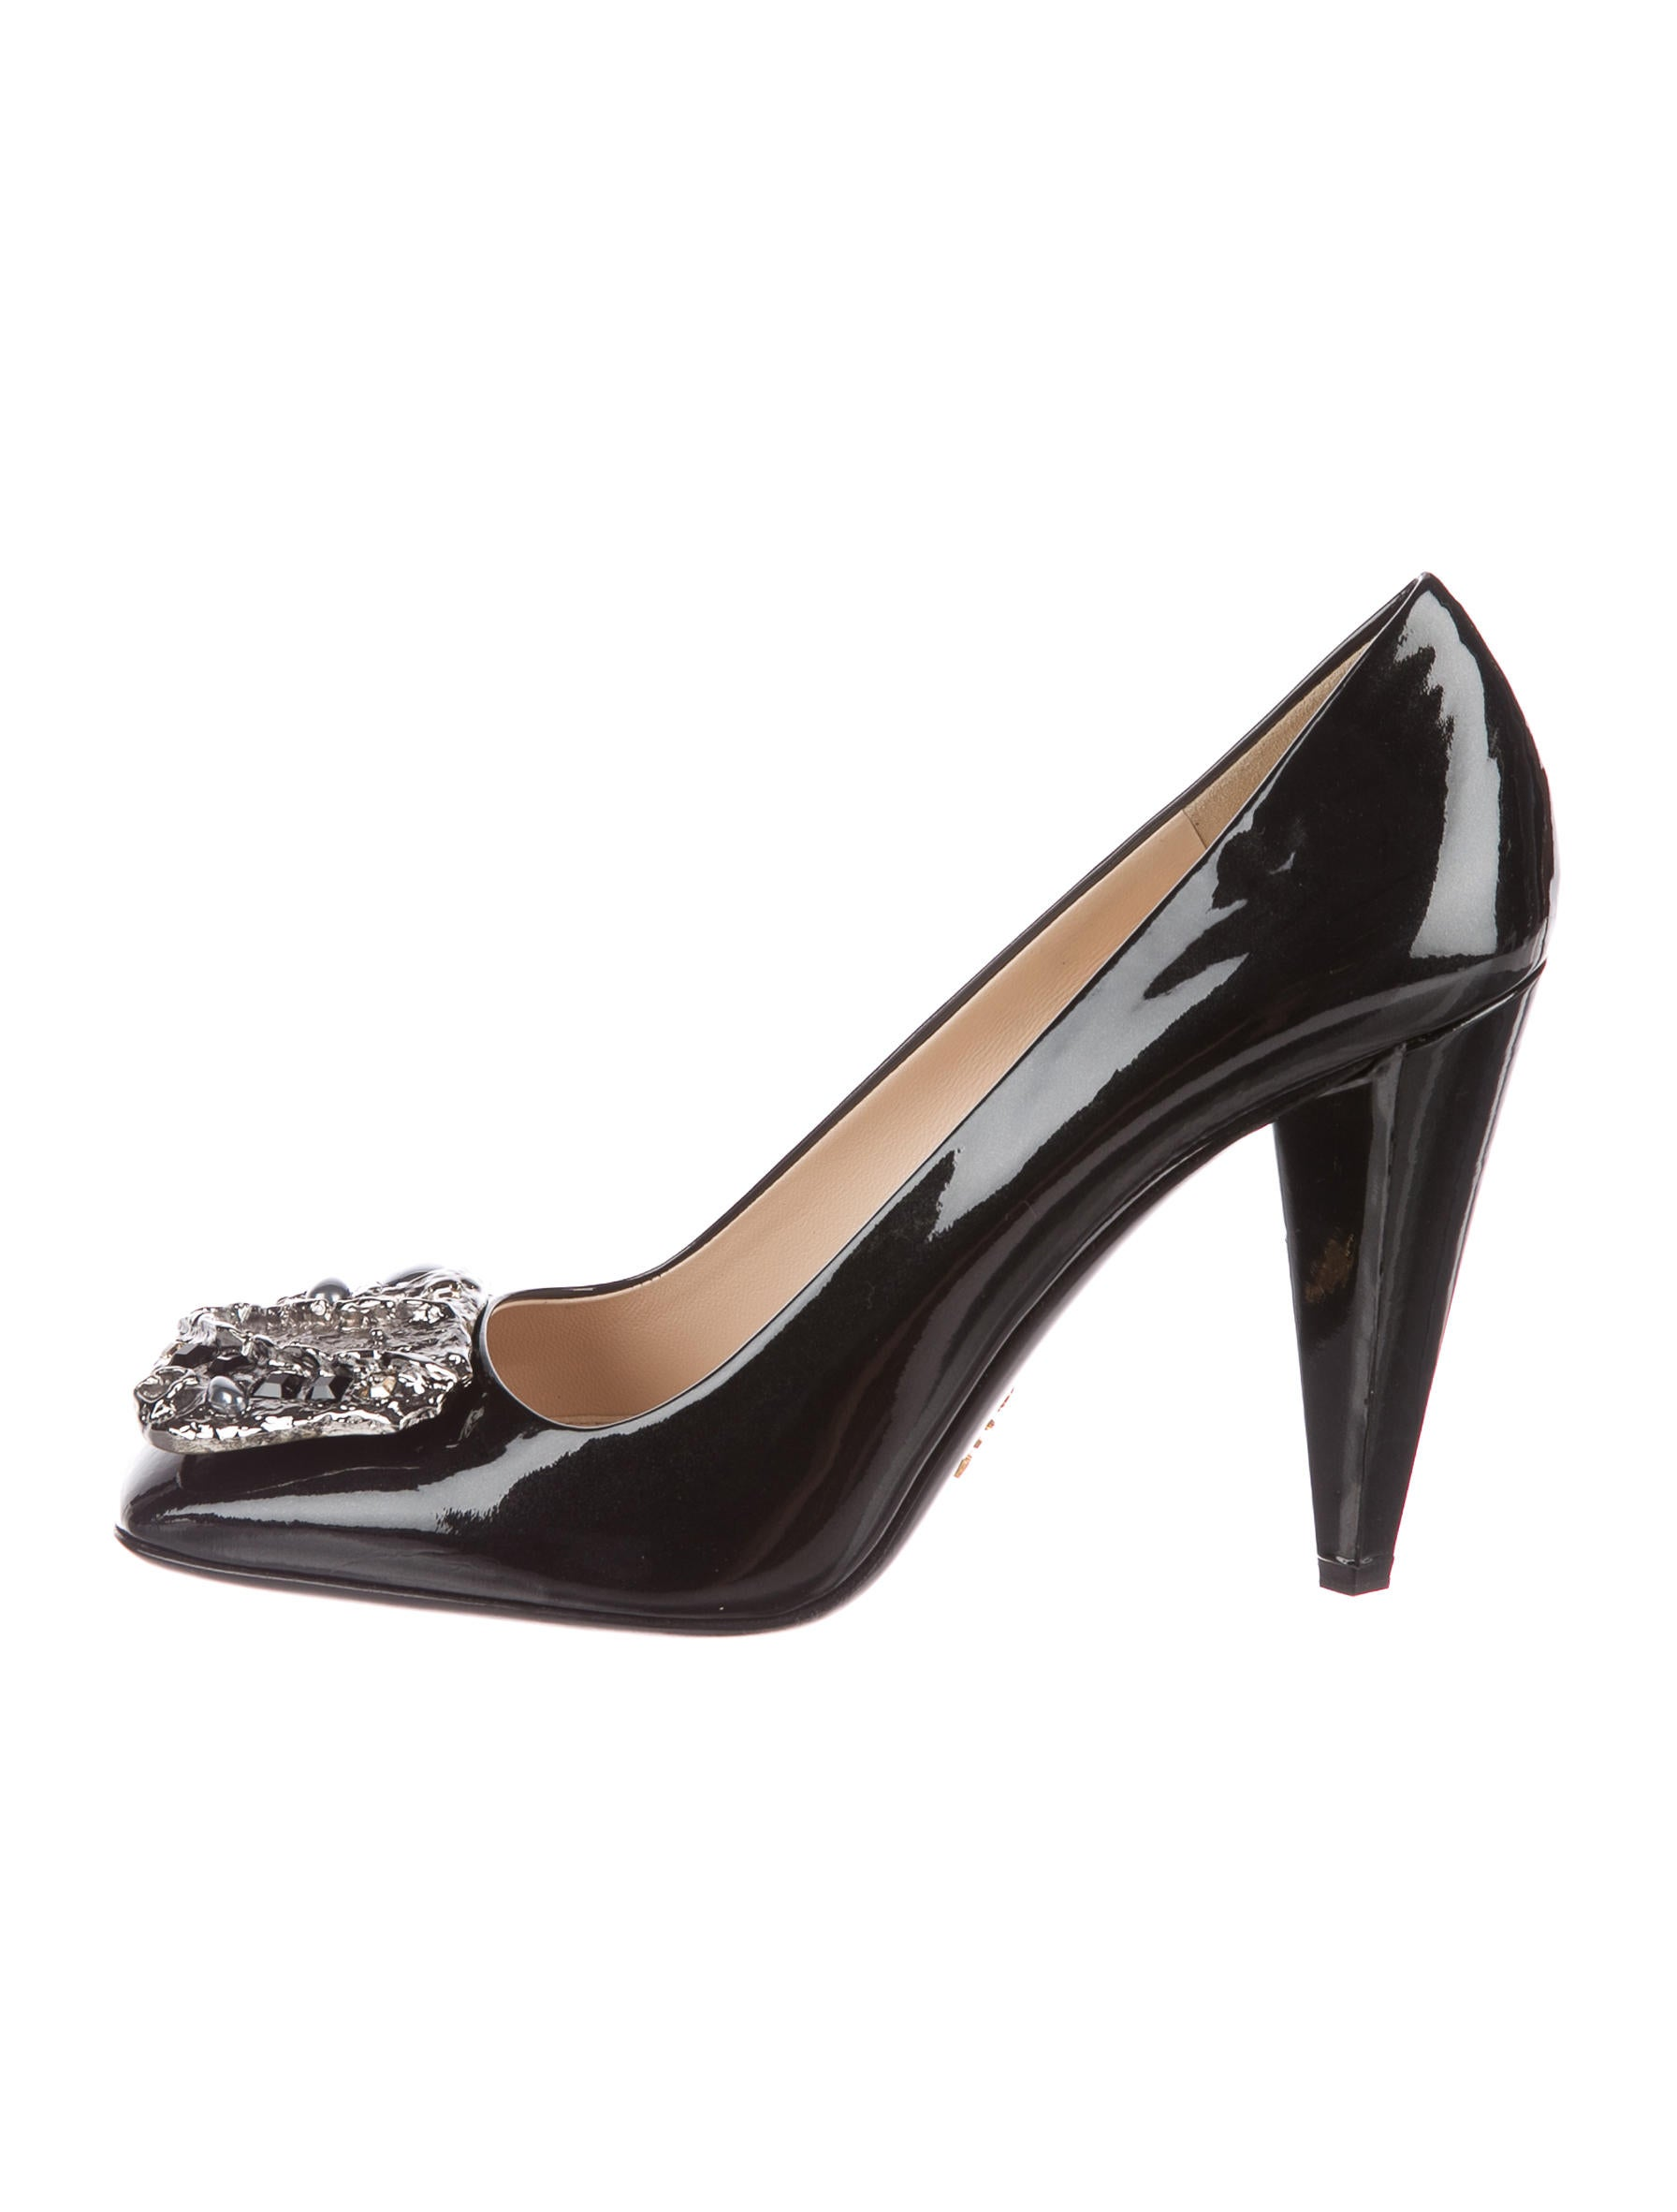 Prada Embellished Patent Pumps w/ Tags cheap sale manchester great sale Dn1yo